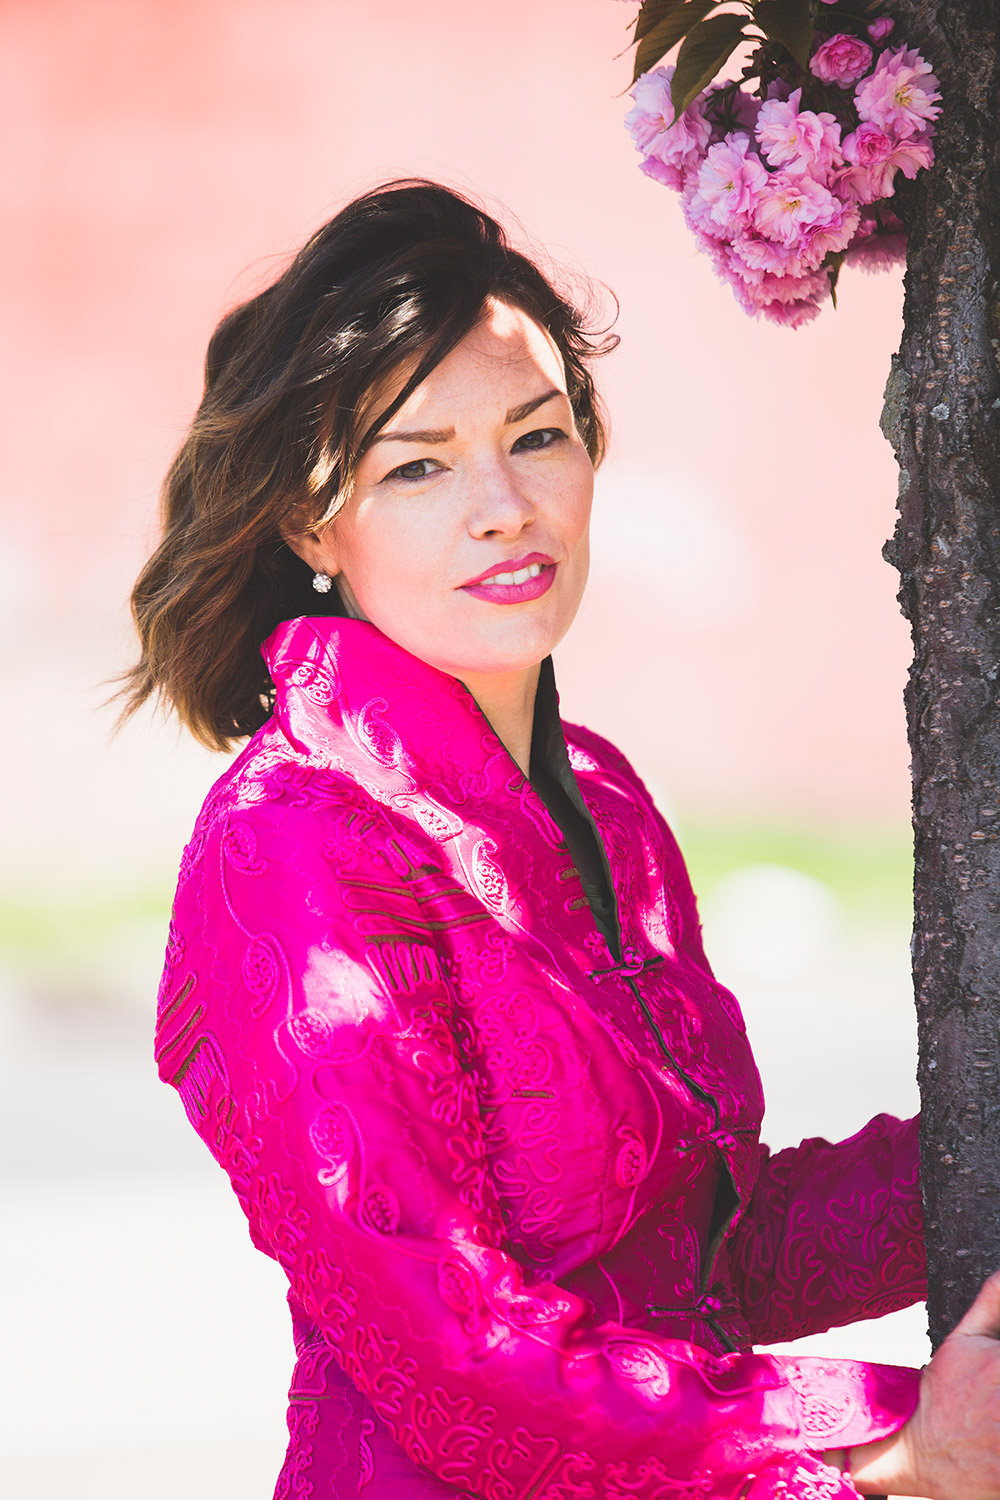 Nancy Byrne by tree in pink jacket